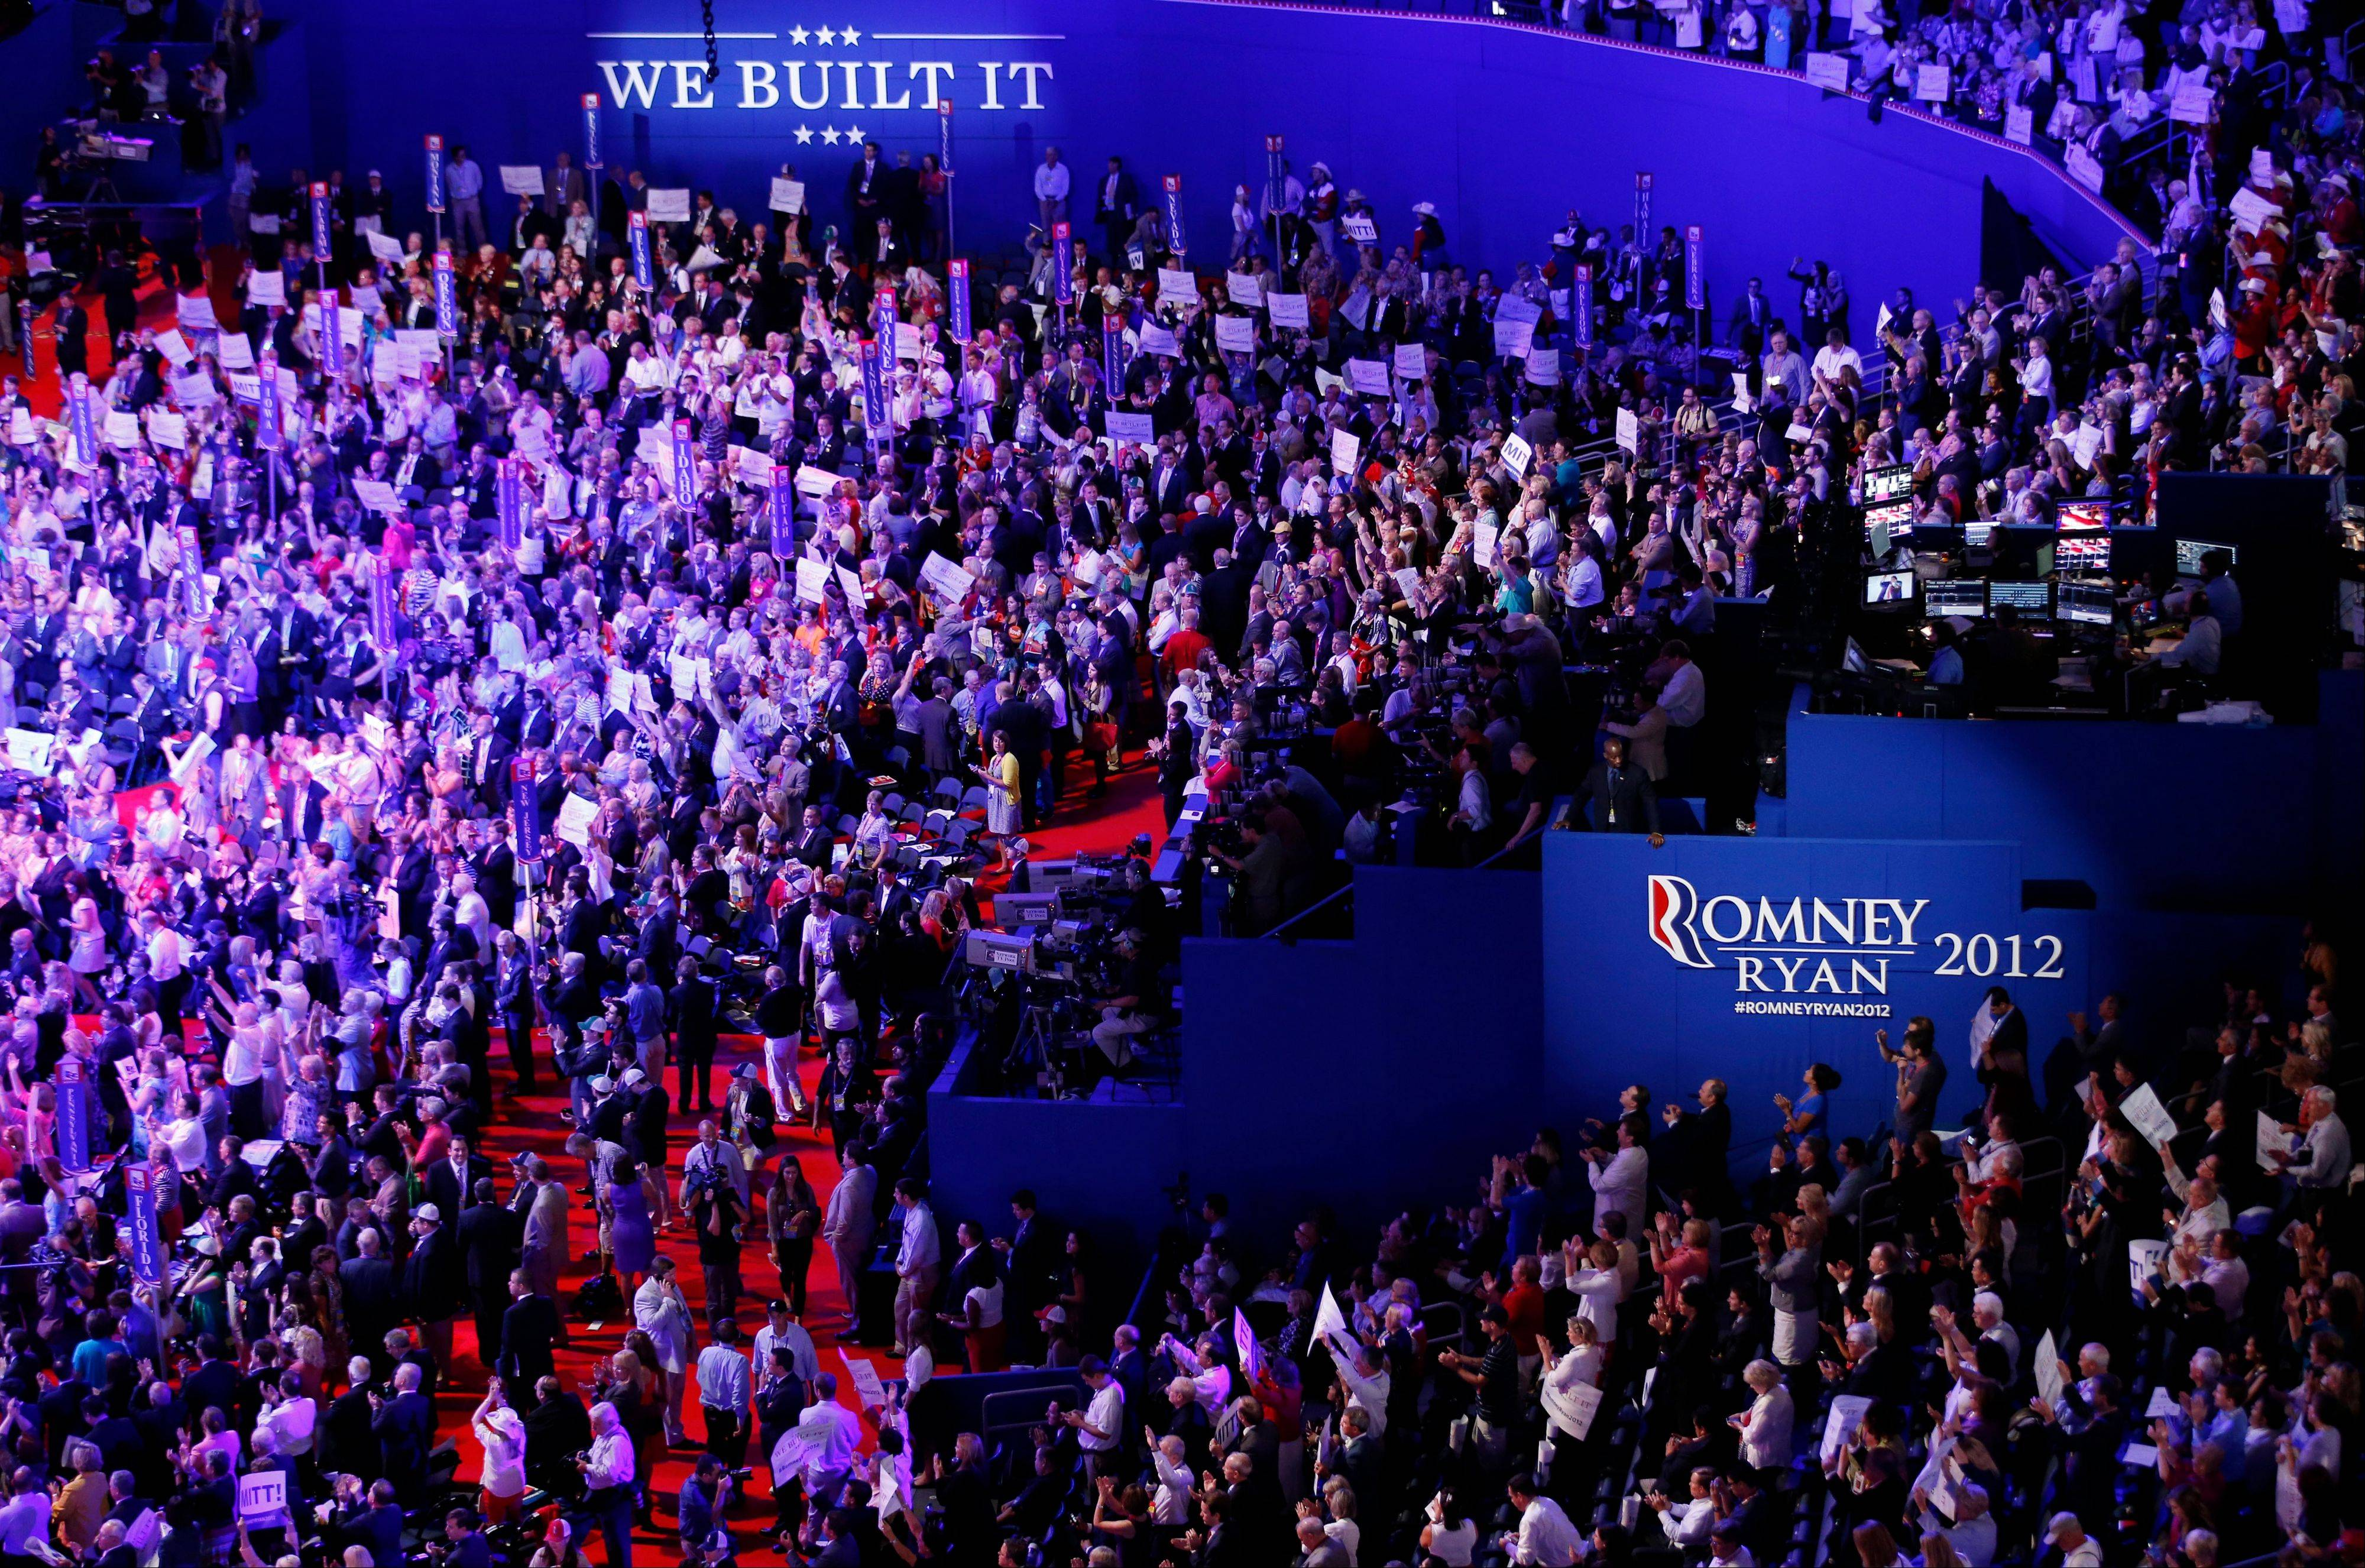 Delegates gather in the Tampa Bay Times Forum during the Republican National Convention.